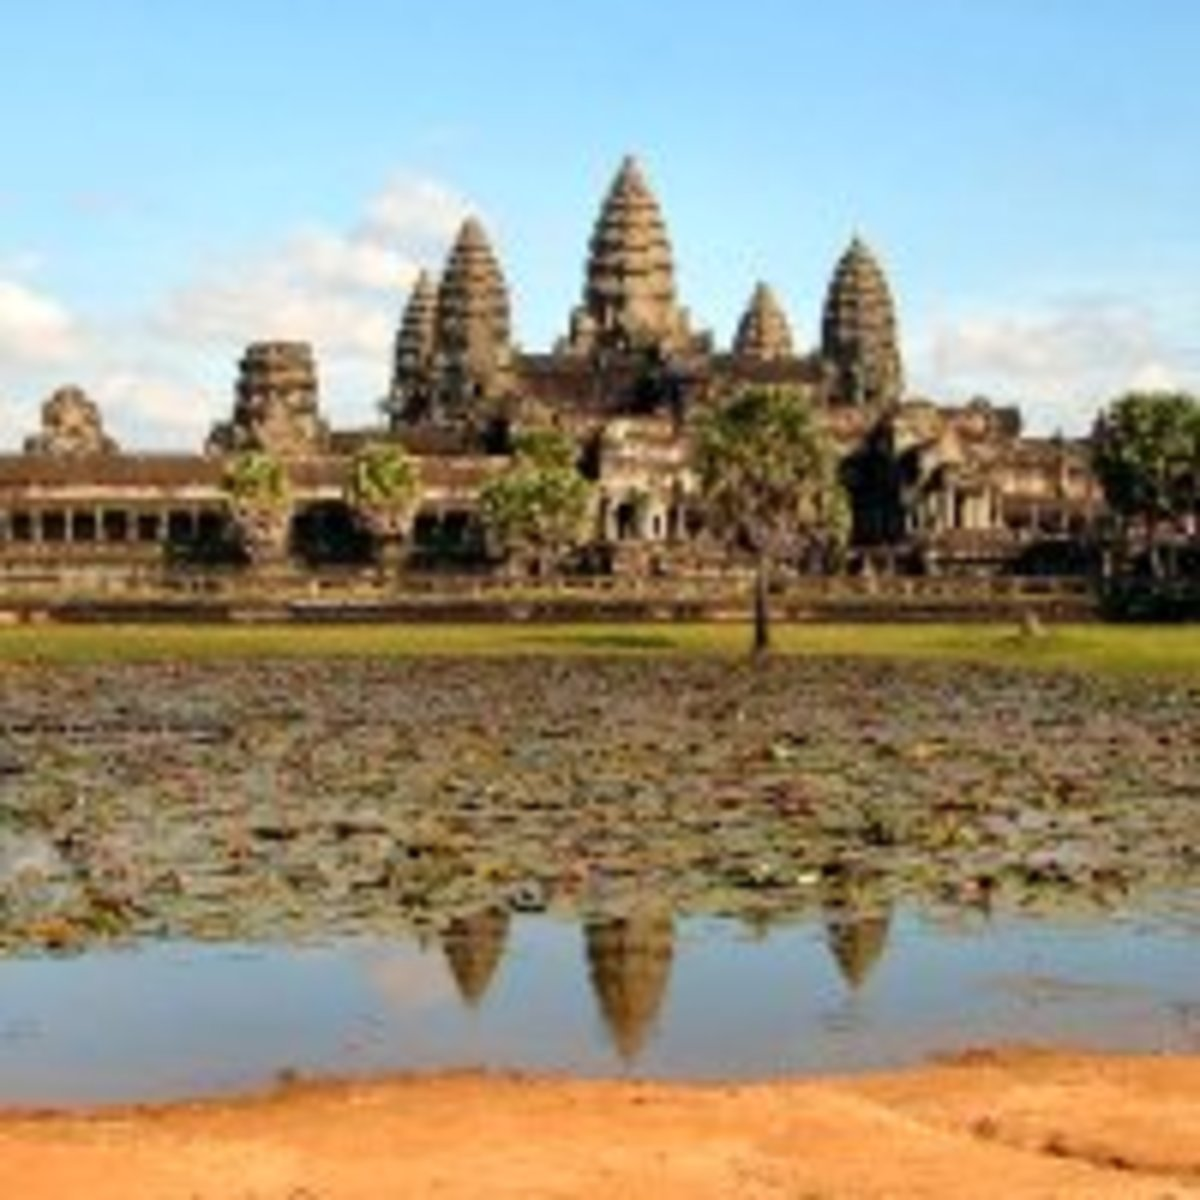 The Angkor Wat temple ruins stand at the center of a UNESCO World Heritage Site in modern Cambodia. Built in the twelfth century, it remains the largest religious building in the world.